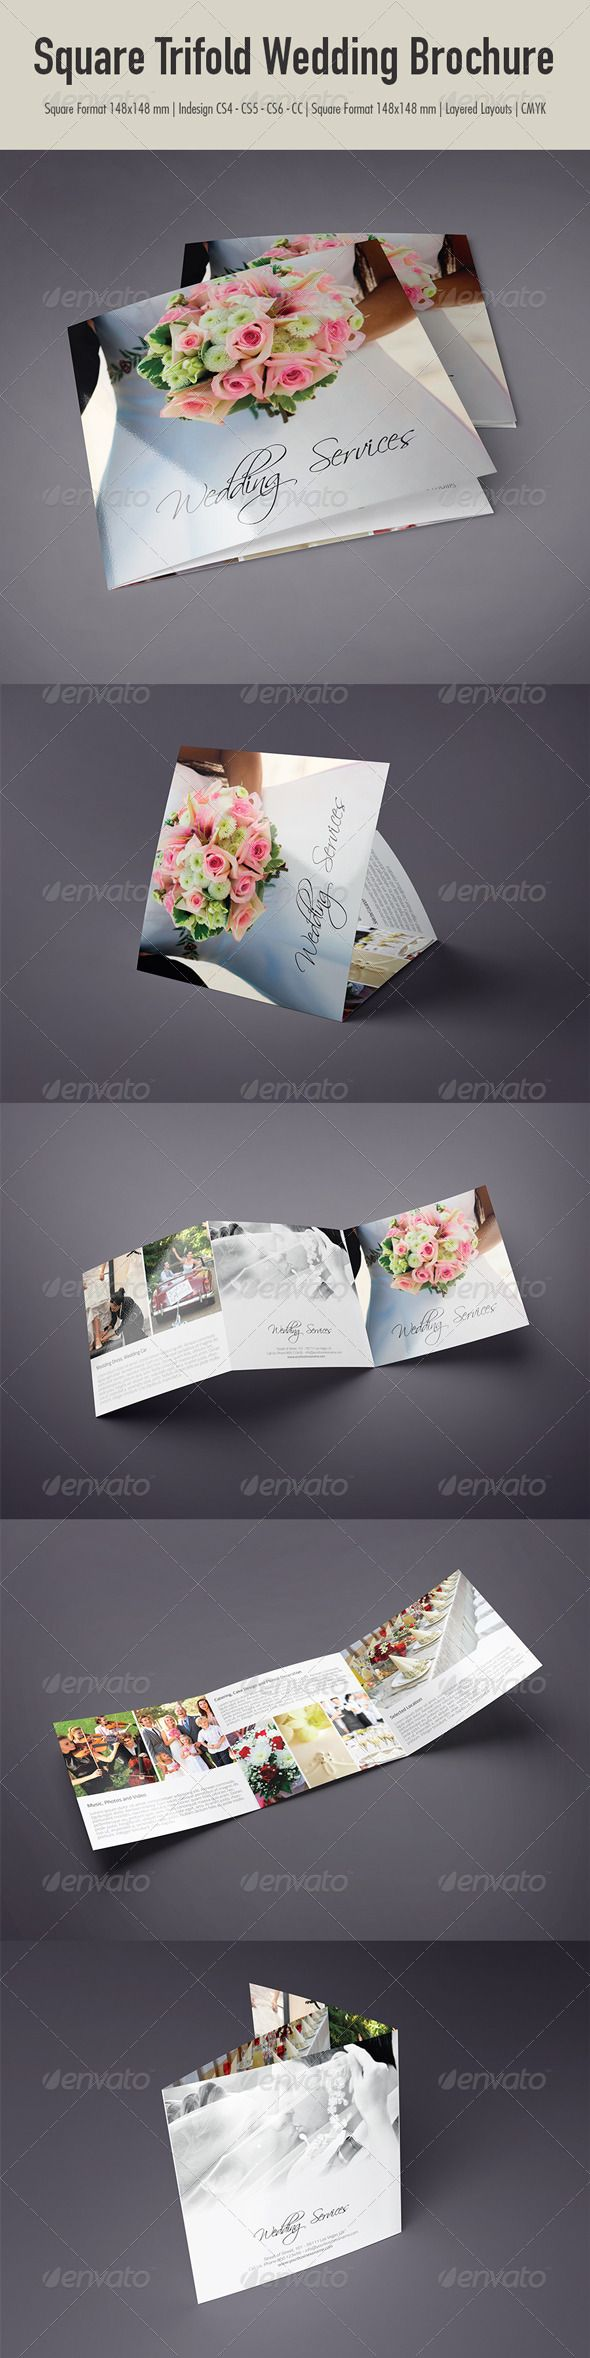 Square Trifold Wedding Brochure